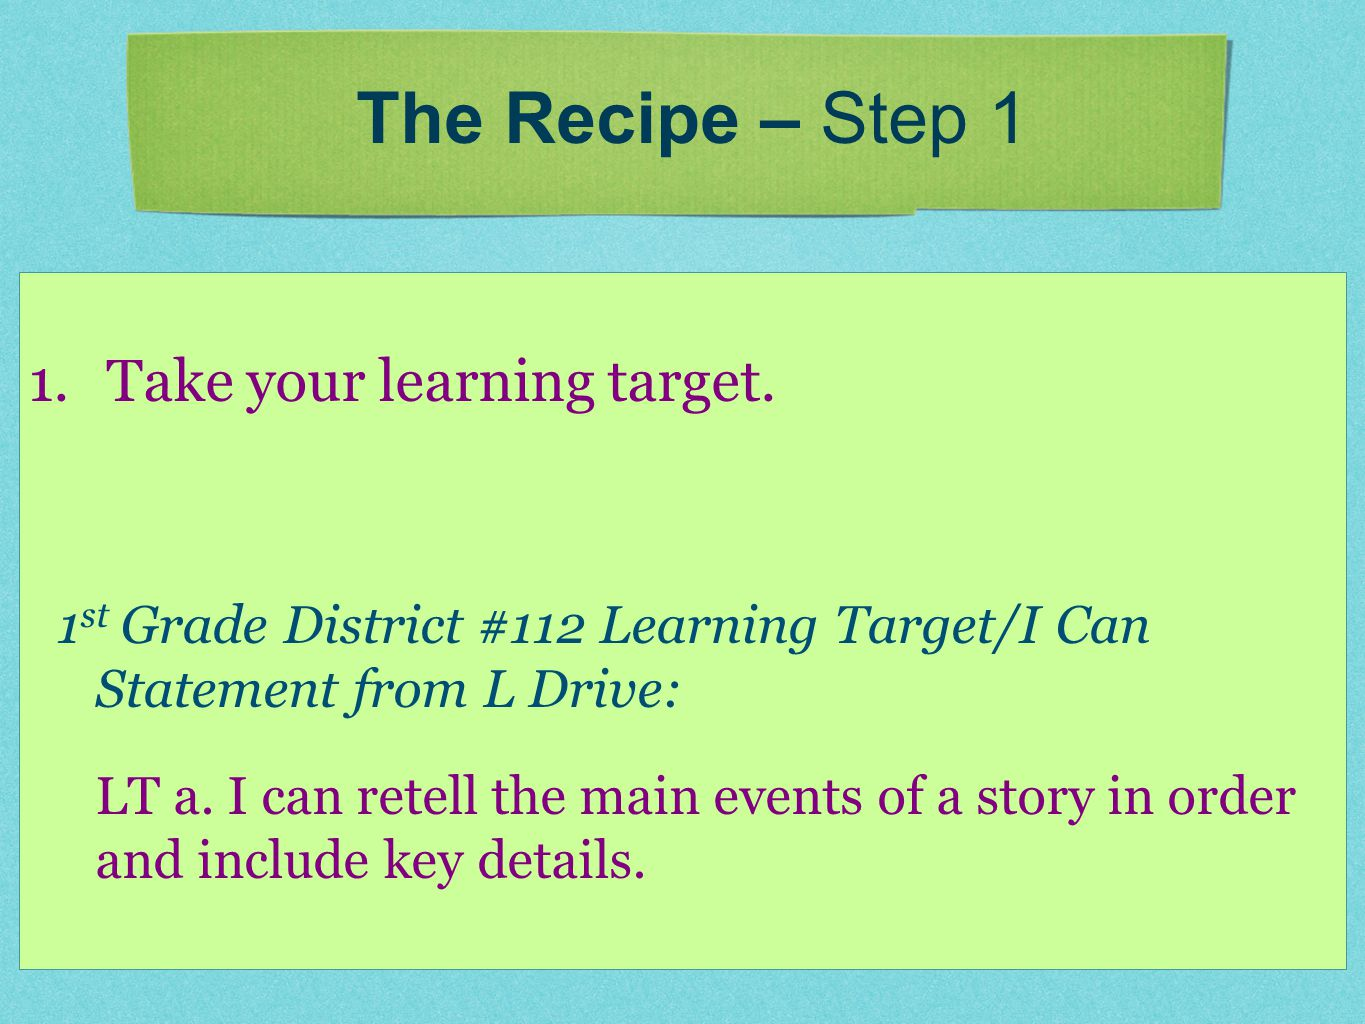 1.Take your learning target.